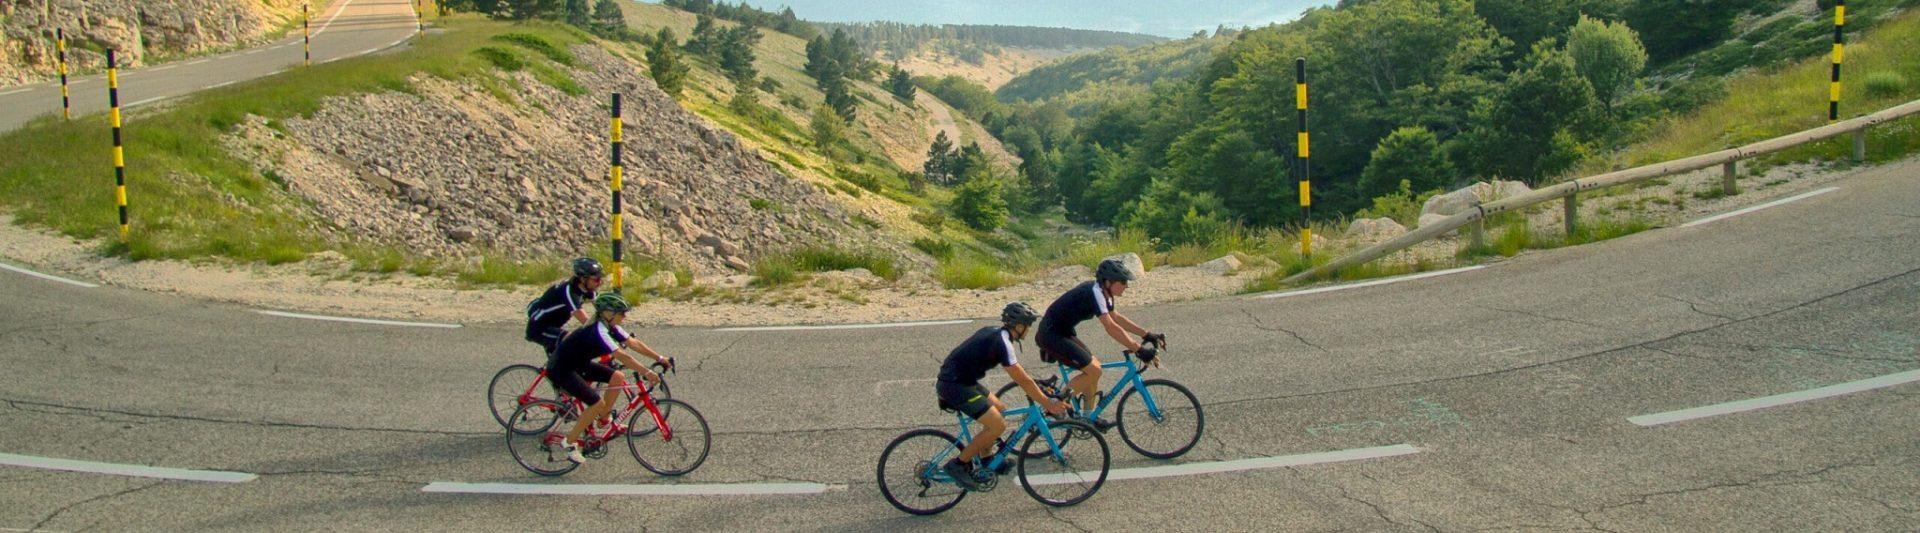 ride-and-more-travel-mont-ventoux-provence-luberon-cycling-endurance